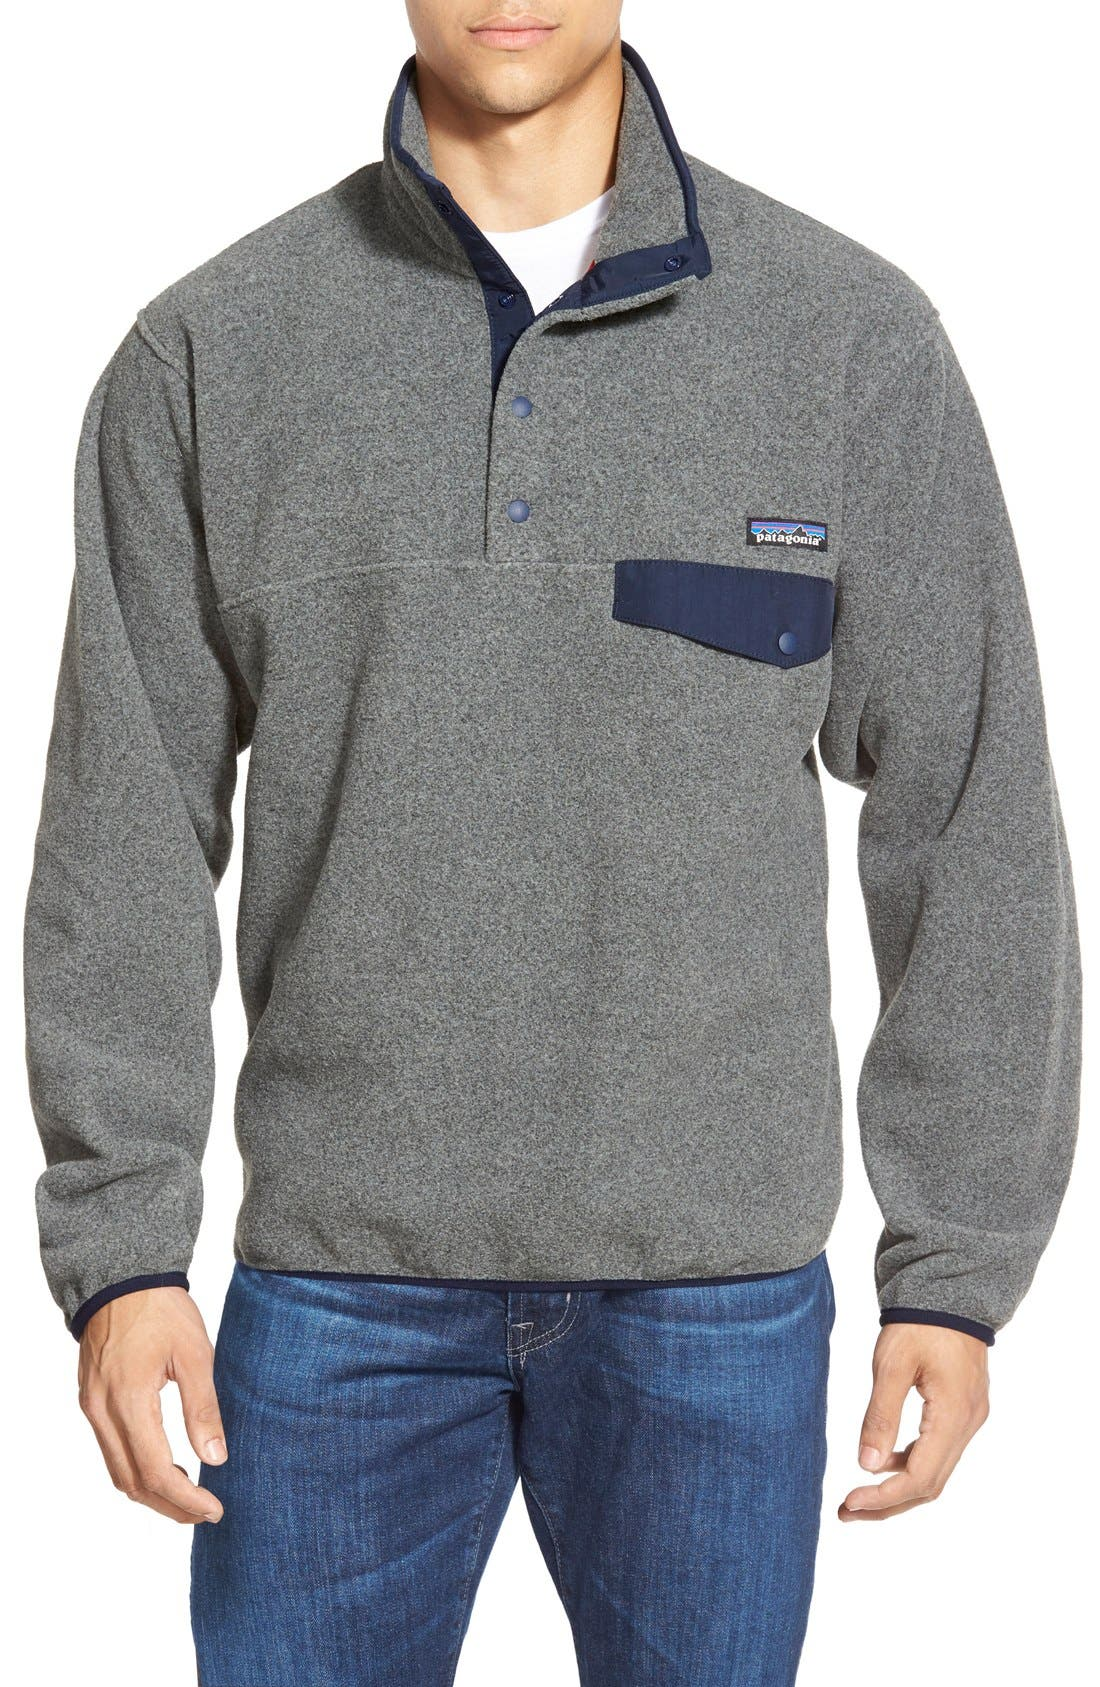 Synchilla<sup>®</sup> Snap-T<sup>®</sup> Fleece Pullover,                             Main thumbnail 1, color,                             NICKEL/ NAVY BLUE